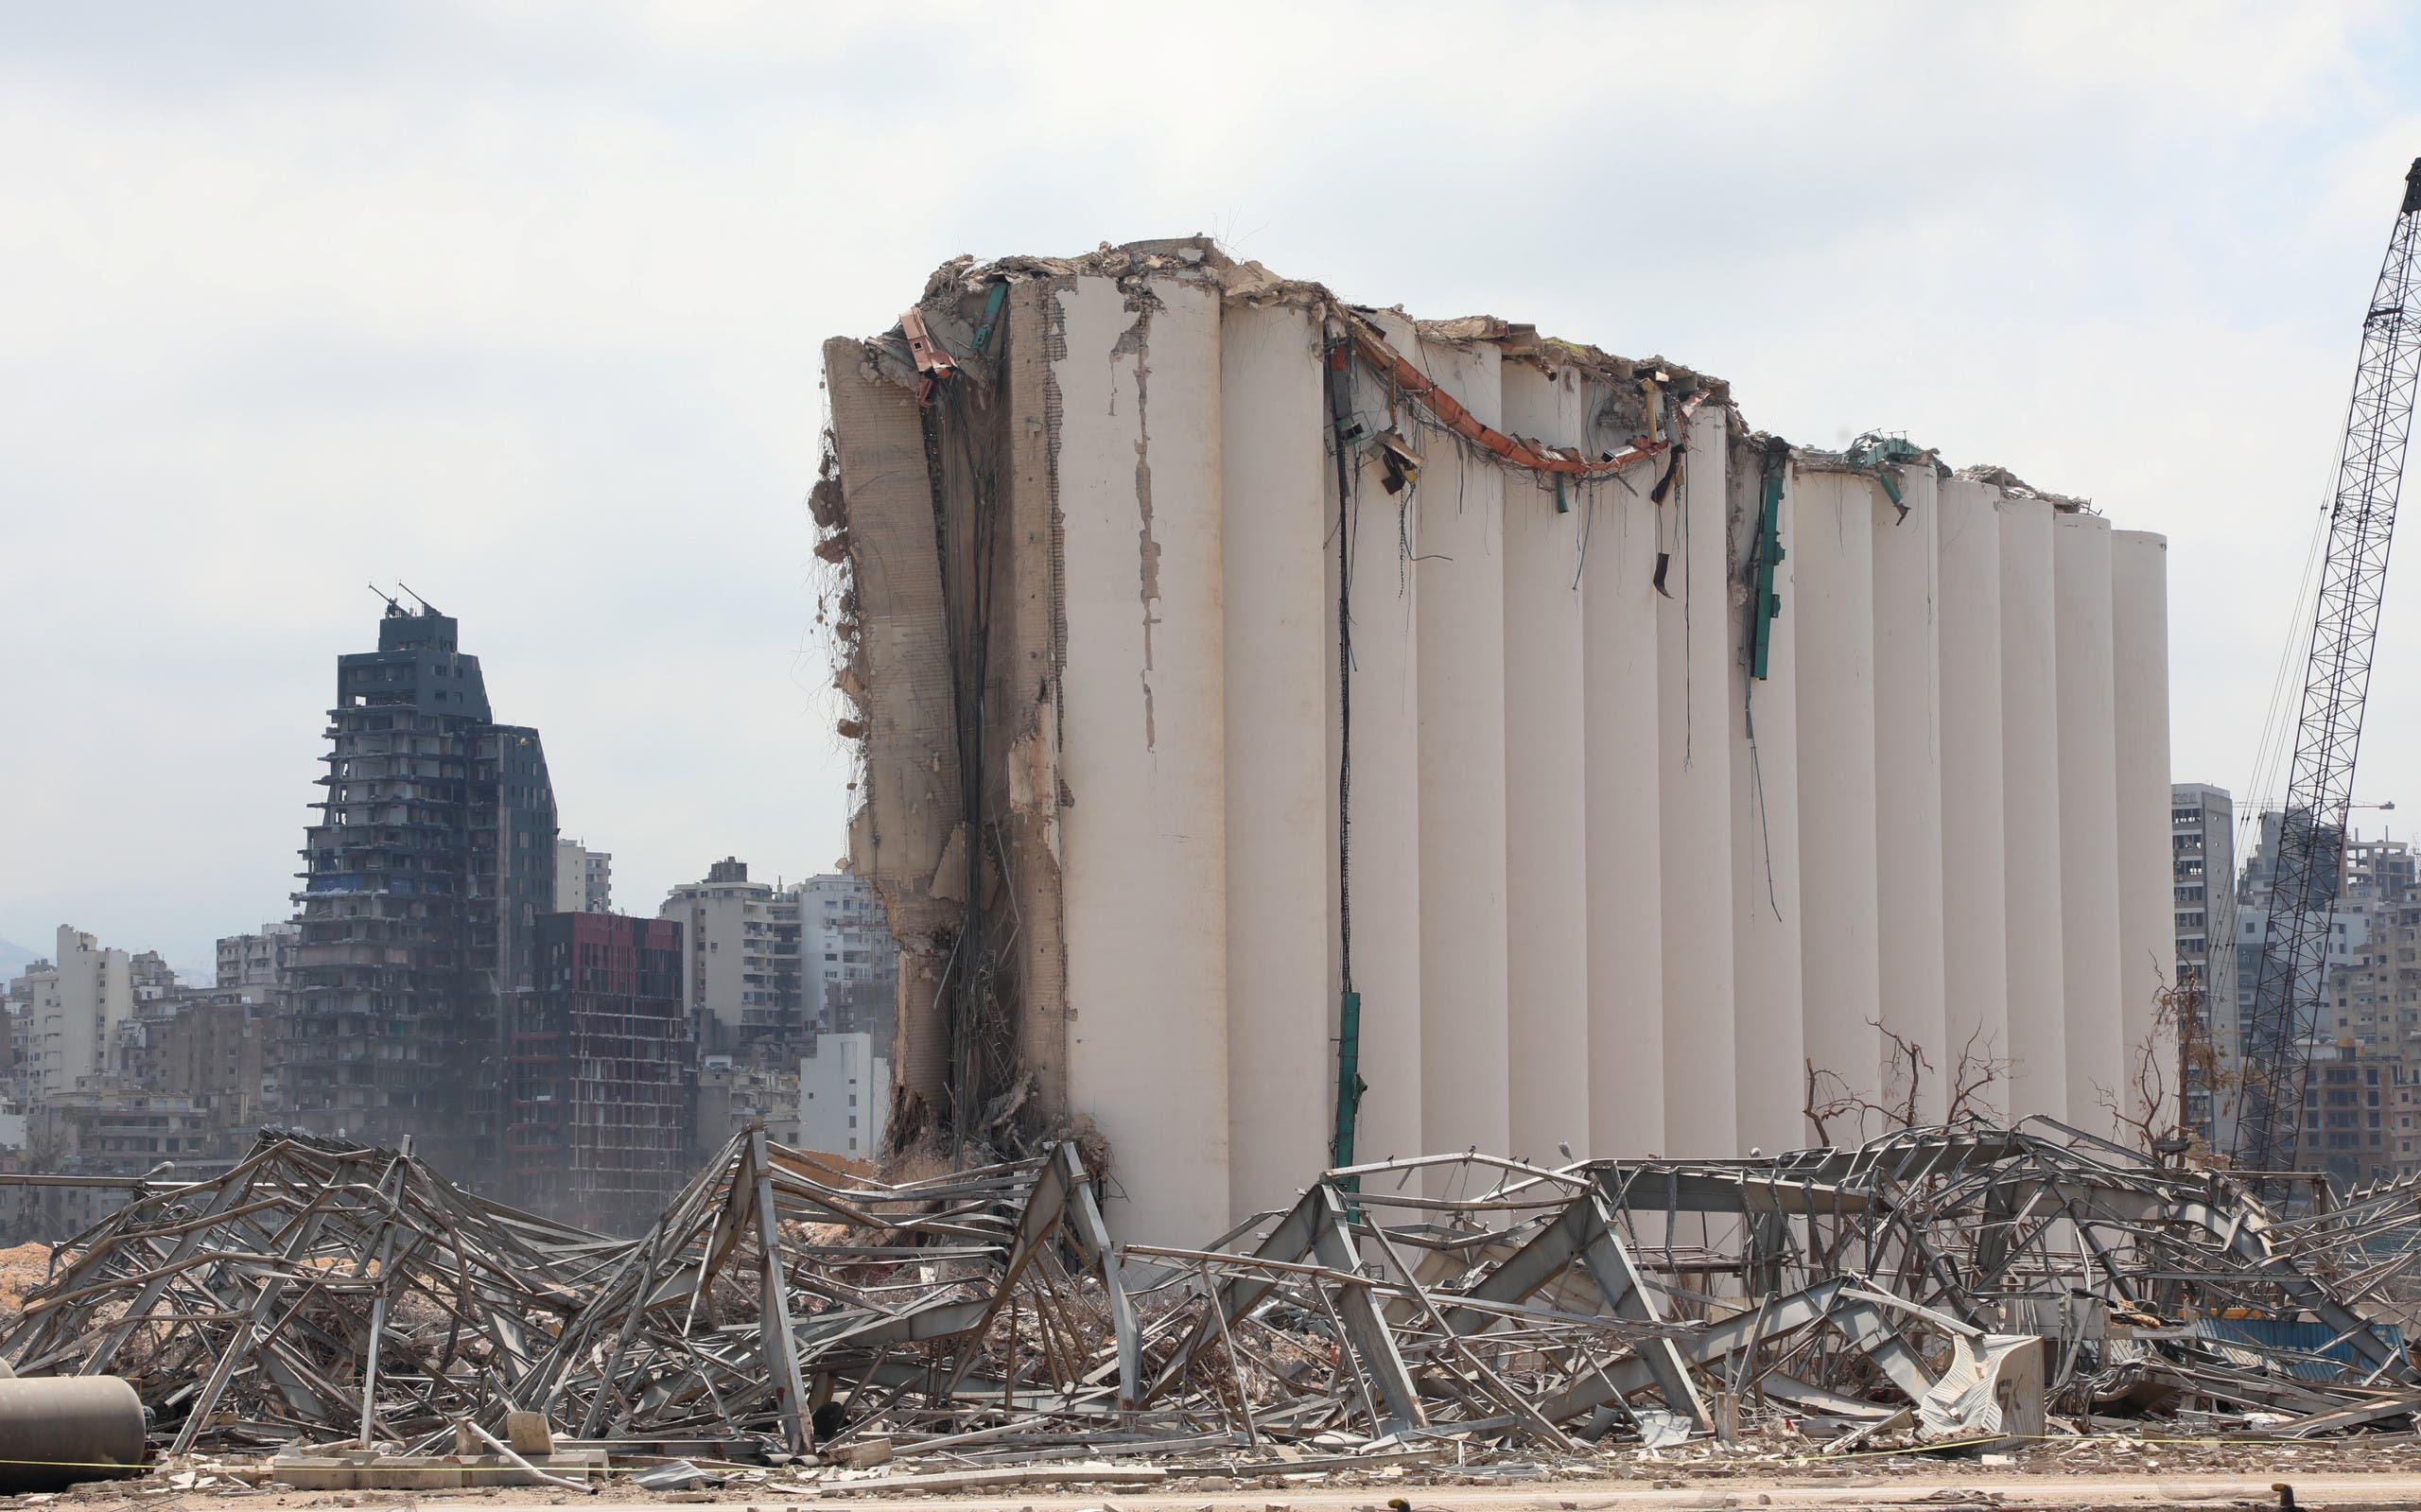 A view of the damaged grain silo following the explosion at Beirut port, in Beirut, Lebanon Aug. 26, 2020. (Reuters)